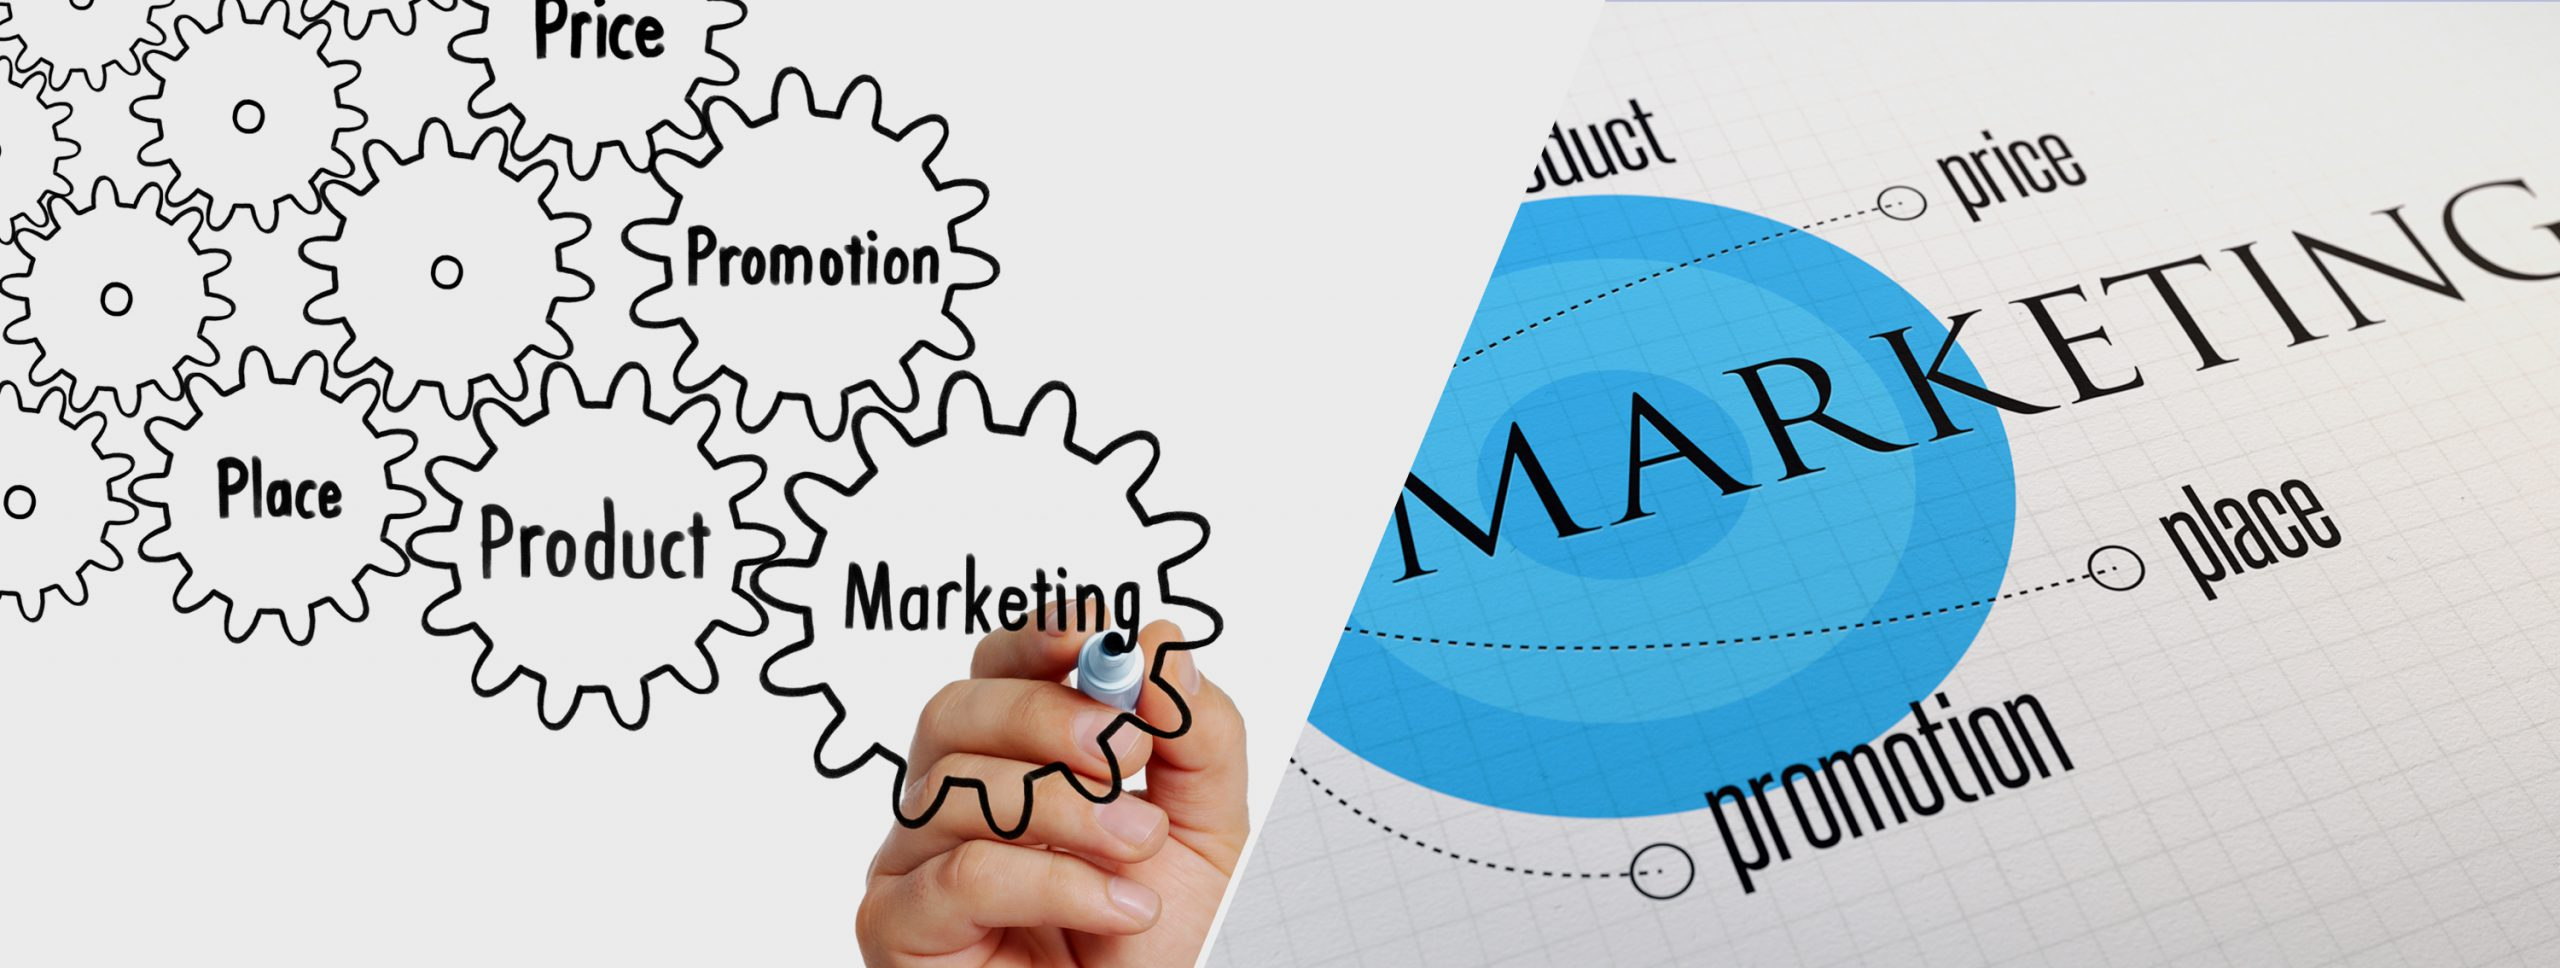 5 Product Marketing Tips for small businesses